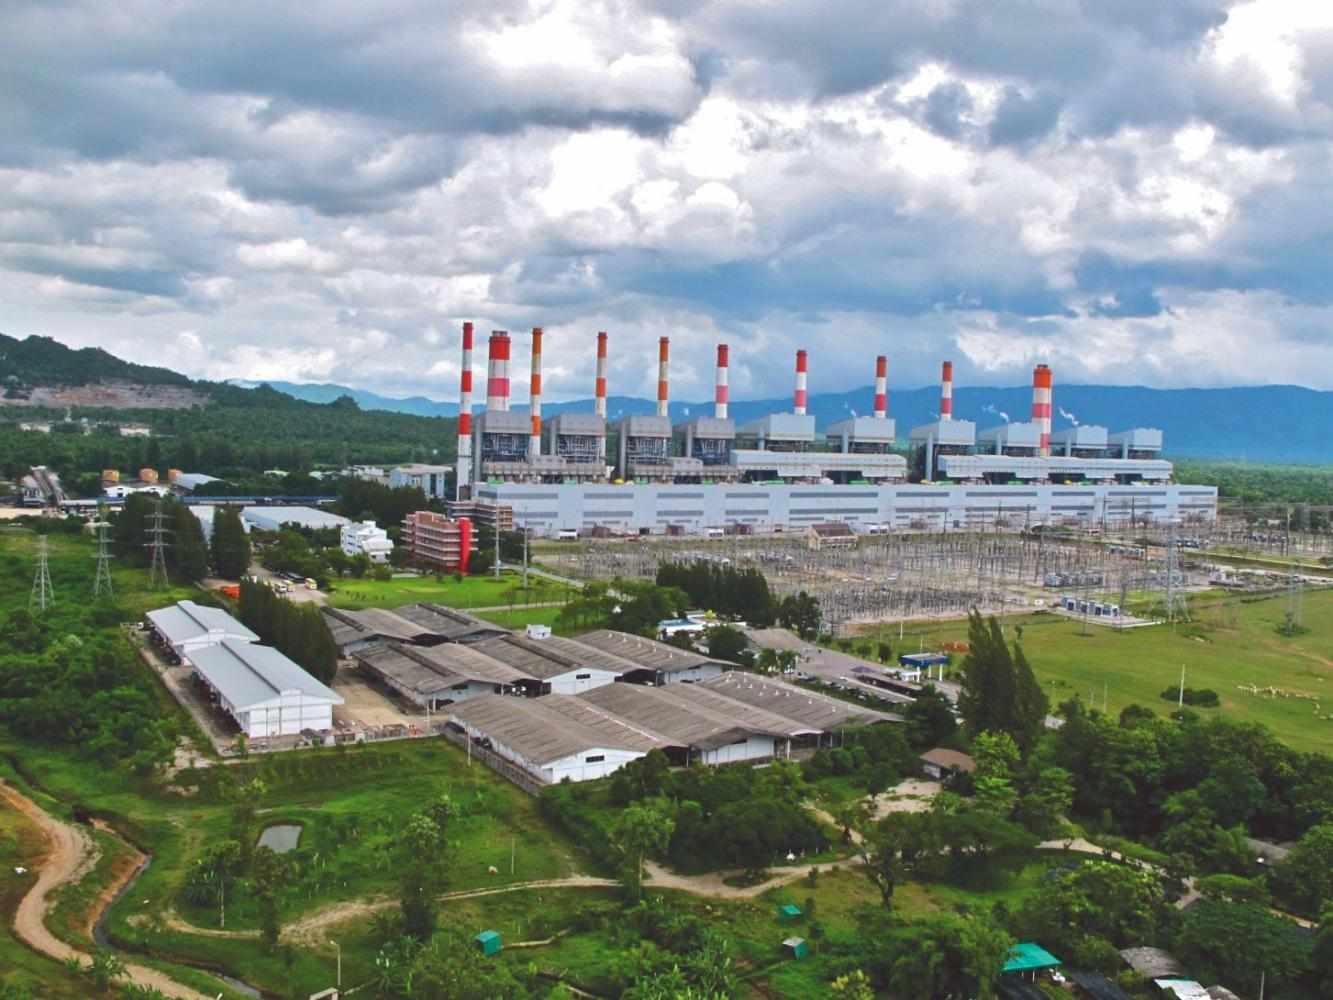 The Electricity Generating Authority of Thailand's Mae Moh power plant in Lampang province has a capacity of 300MW.